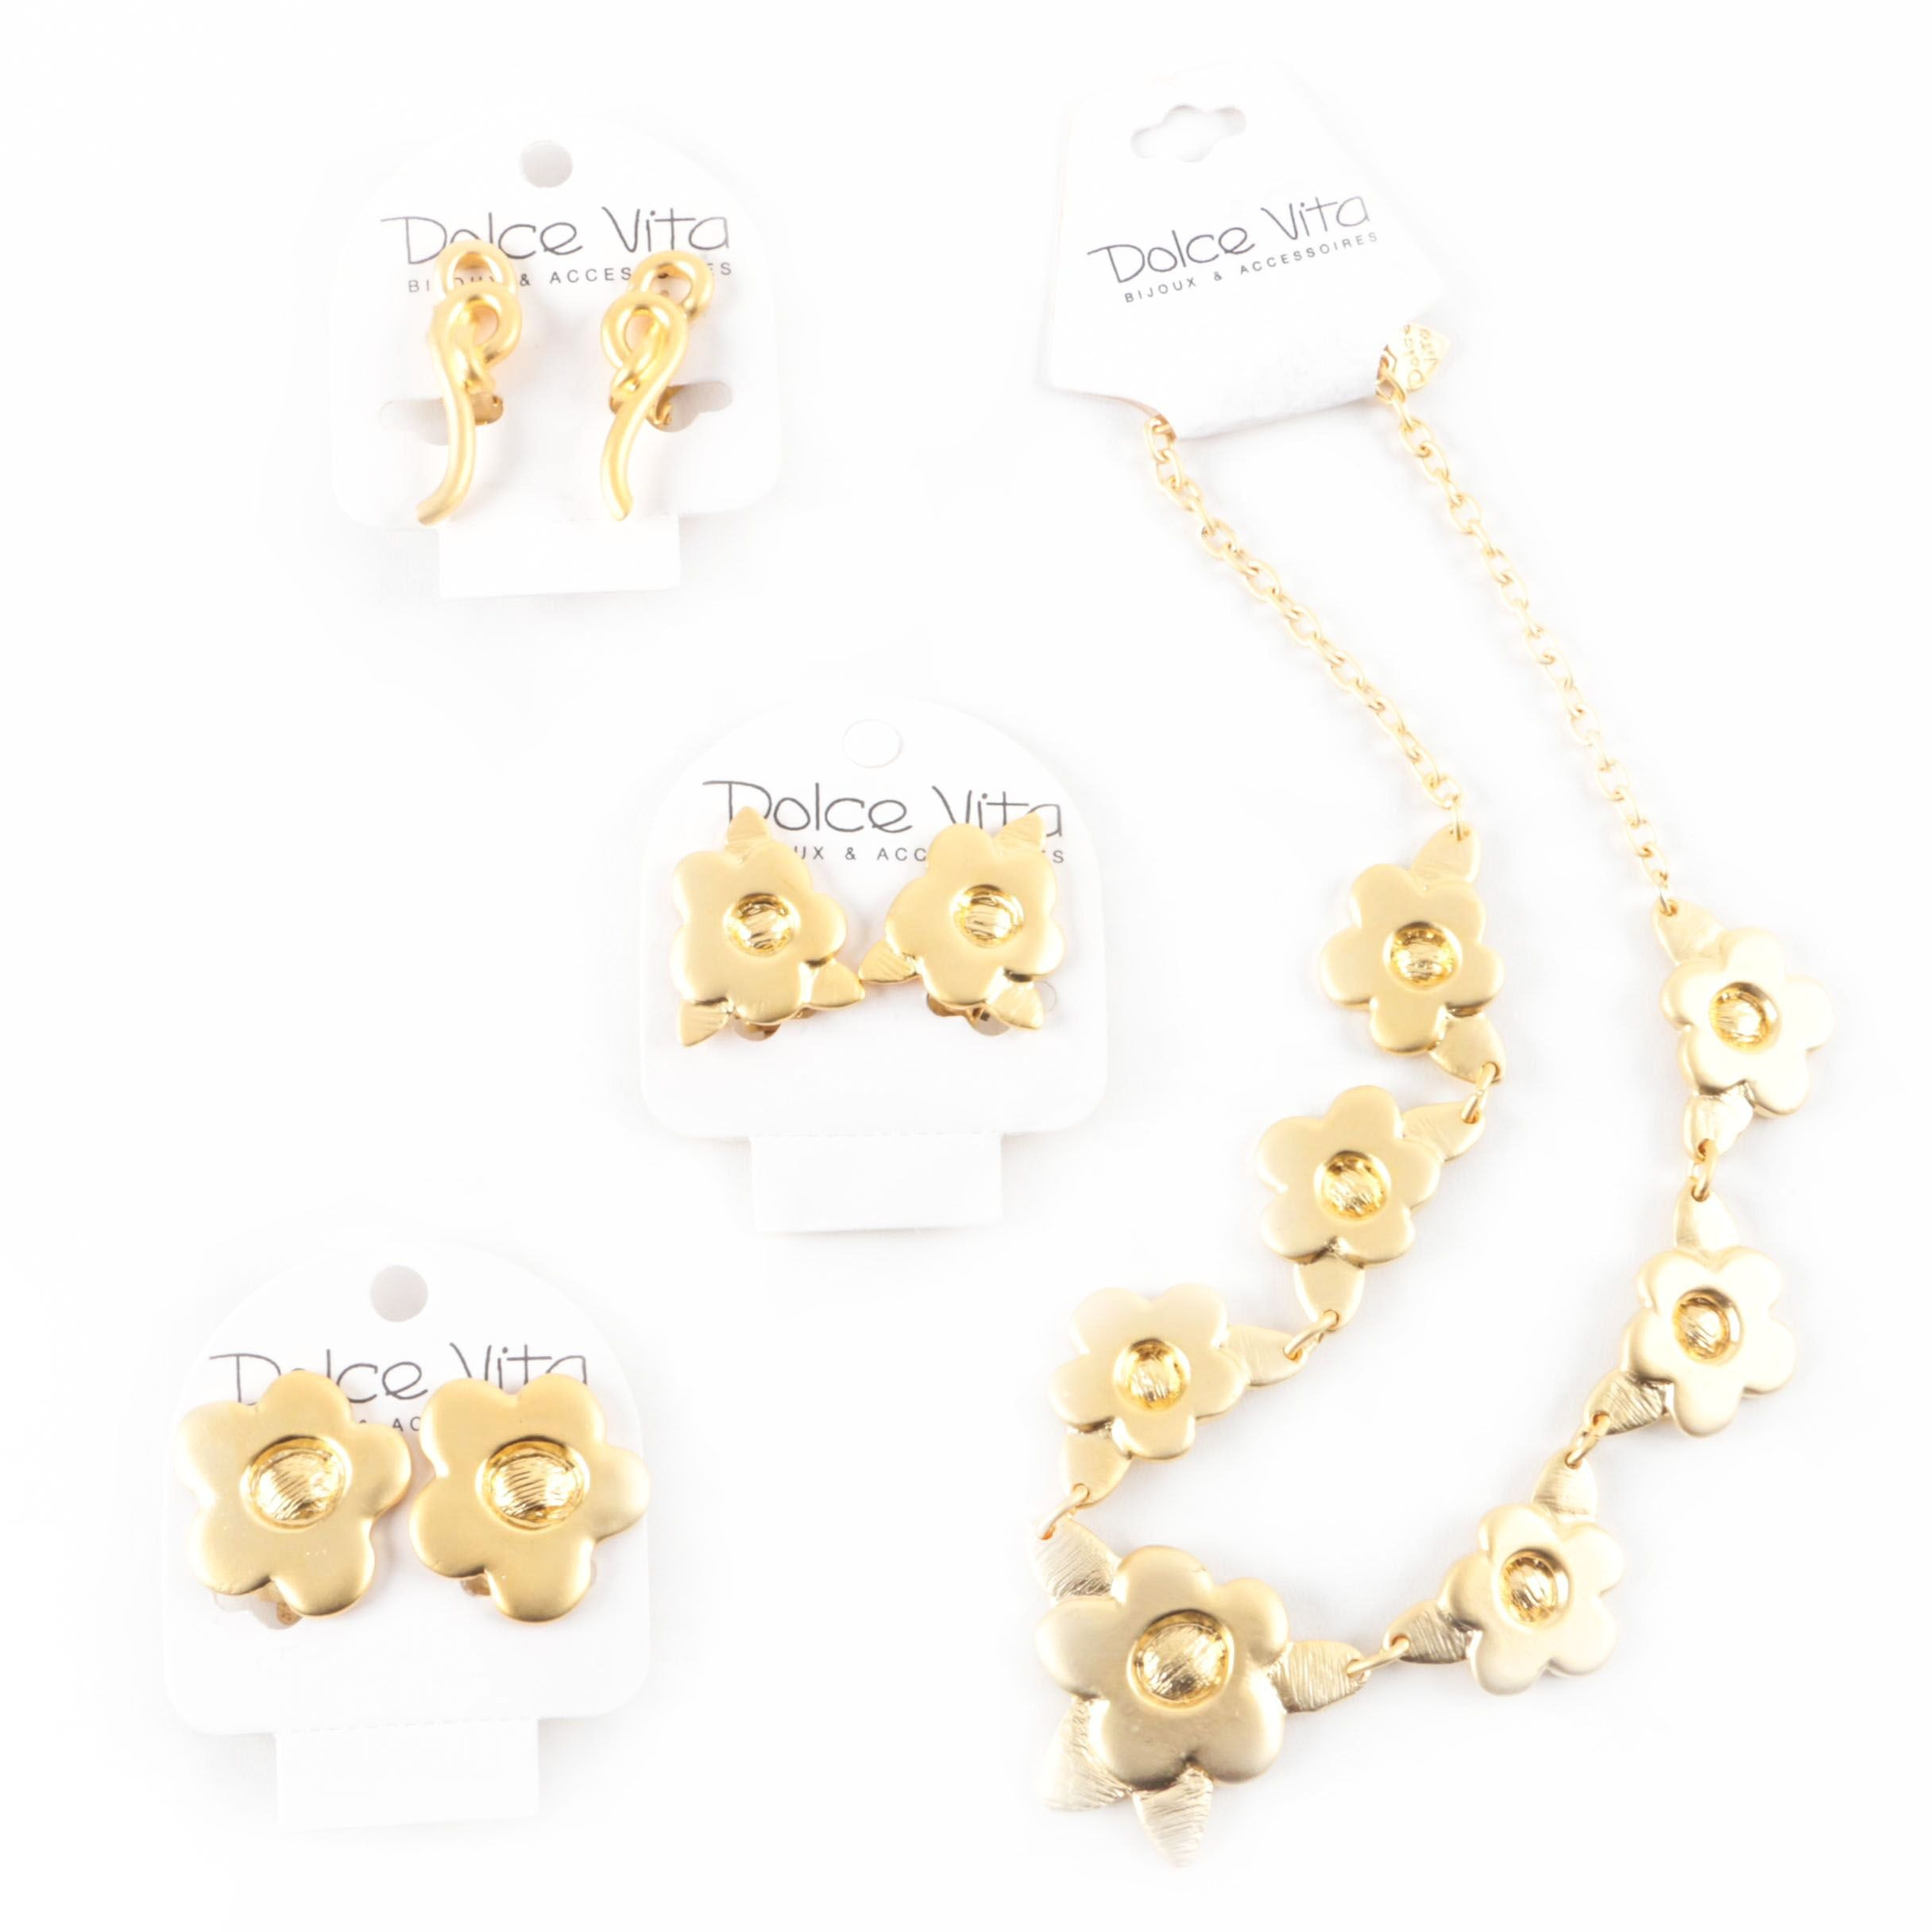 Selection of Dolce Vita Gold Tone Necklace and Clip On Earrings